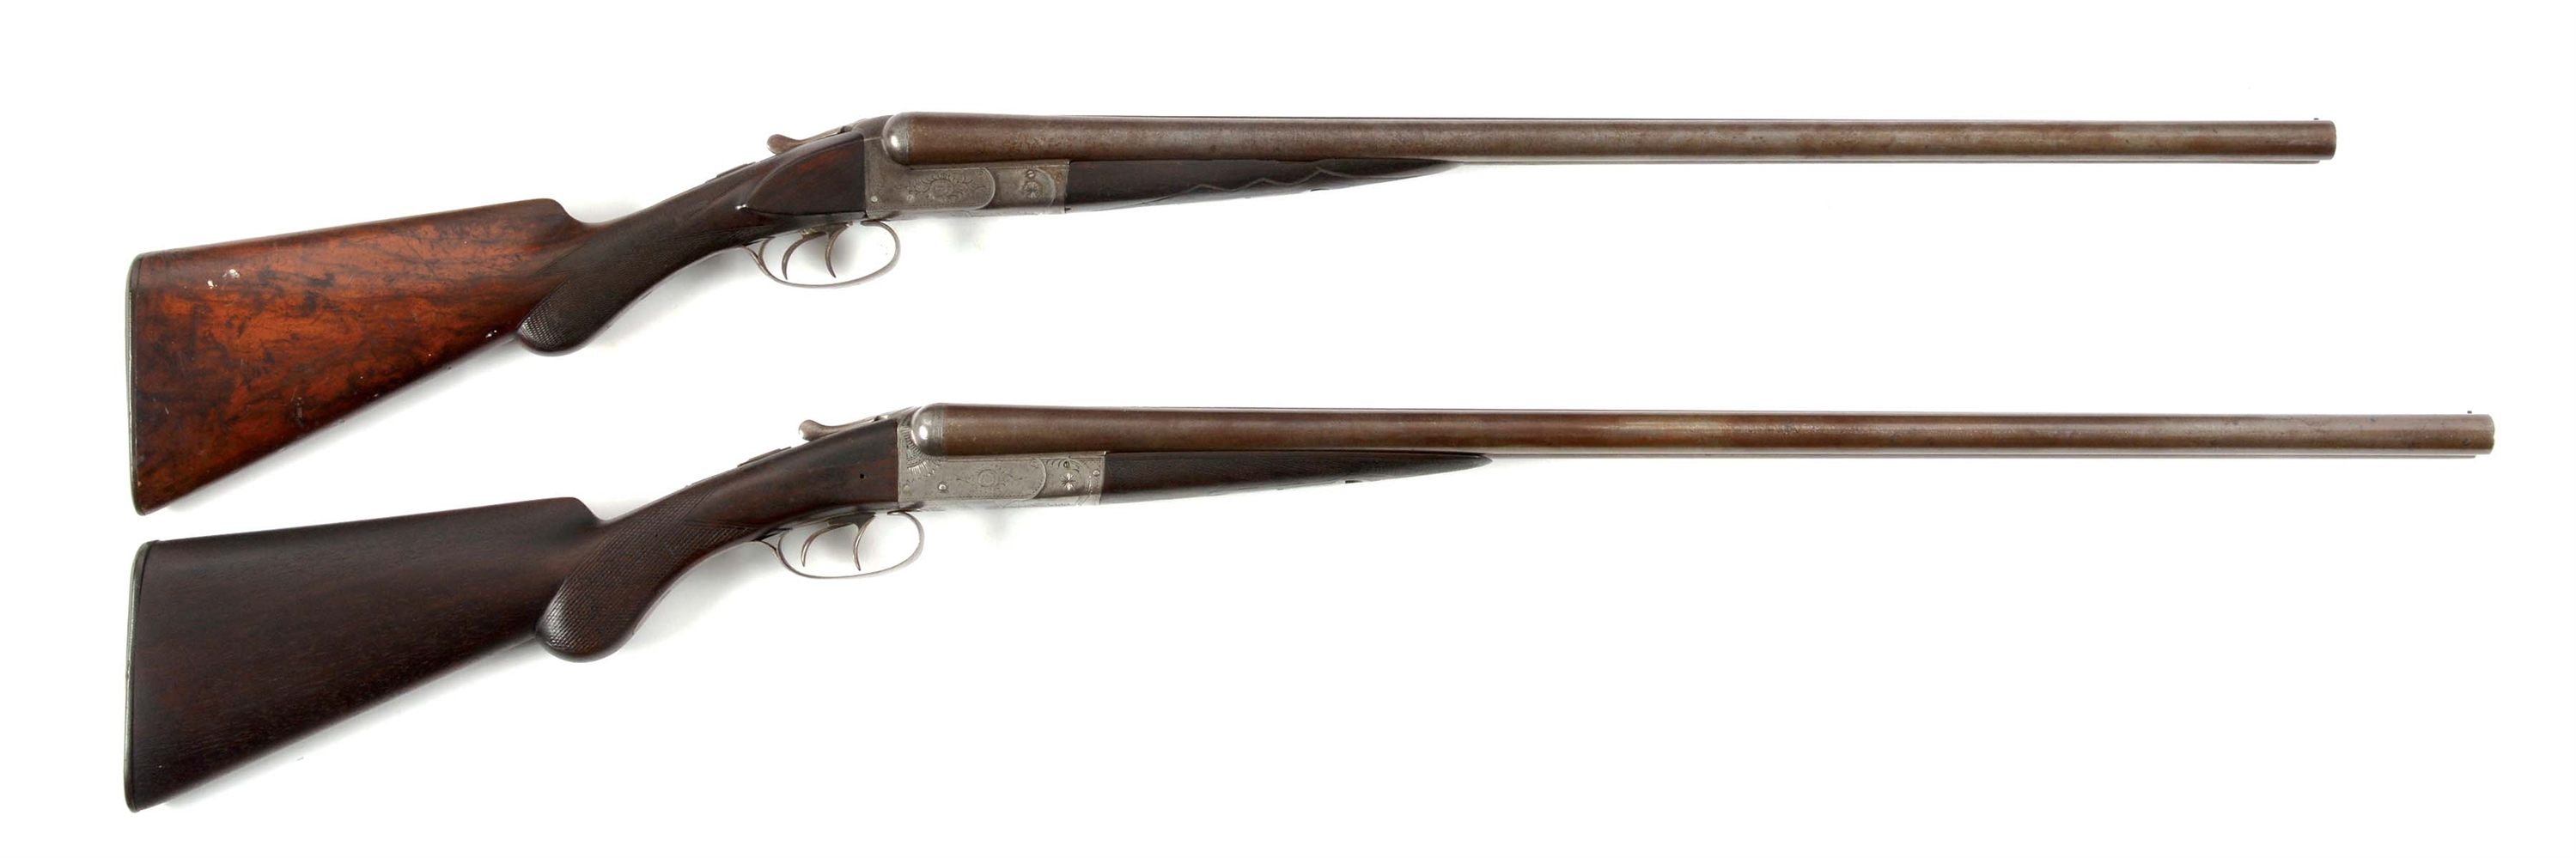 (A) LOT OF TWO: TWO WILKES BARRE SIDE BY SIDE SHOTGUNS.